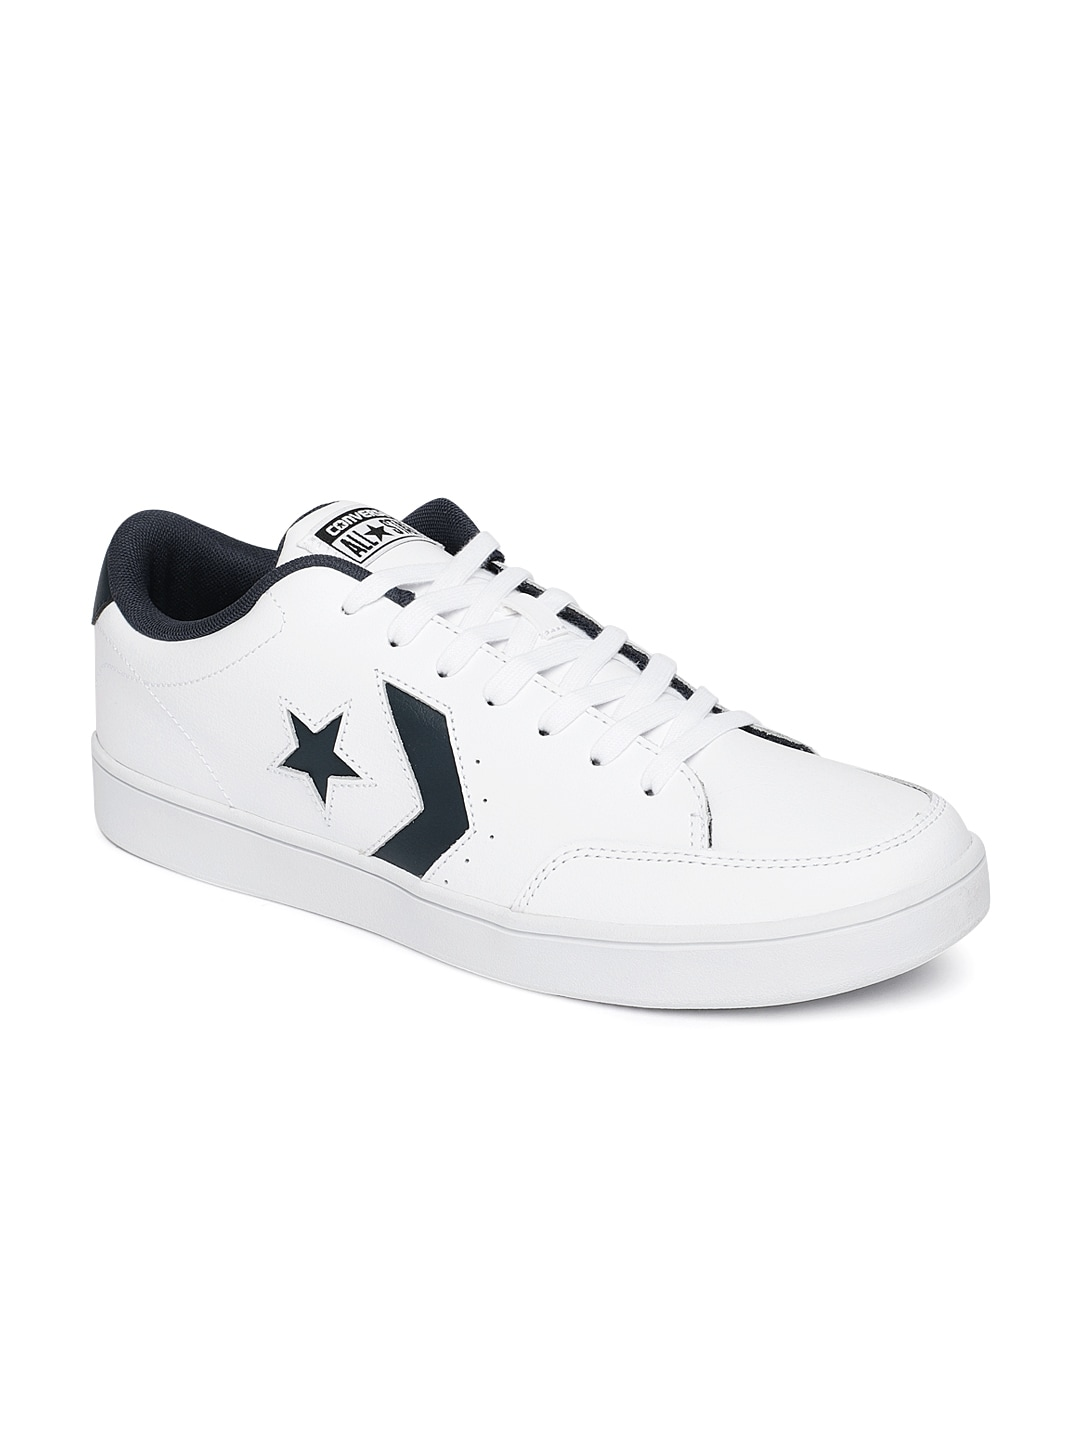 77c074a097 Converse Shoes - Buy Converse Canvas Shoes   Sneakers Online